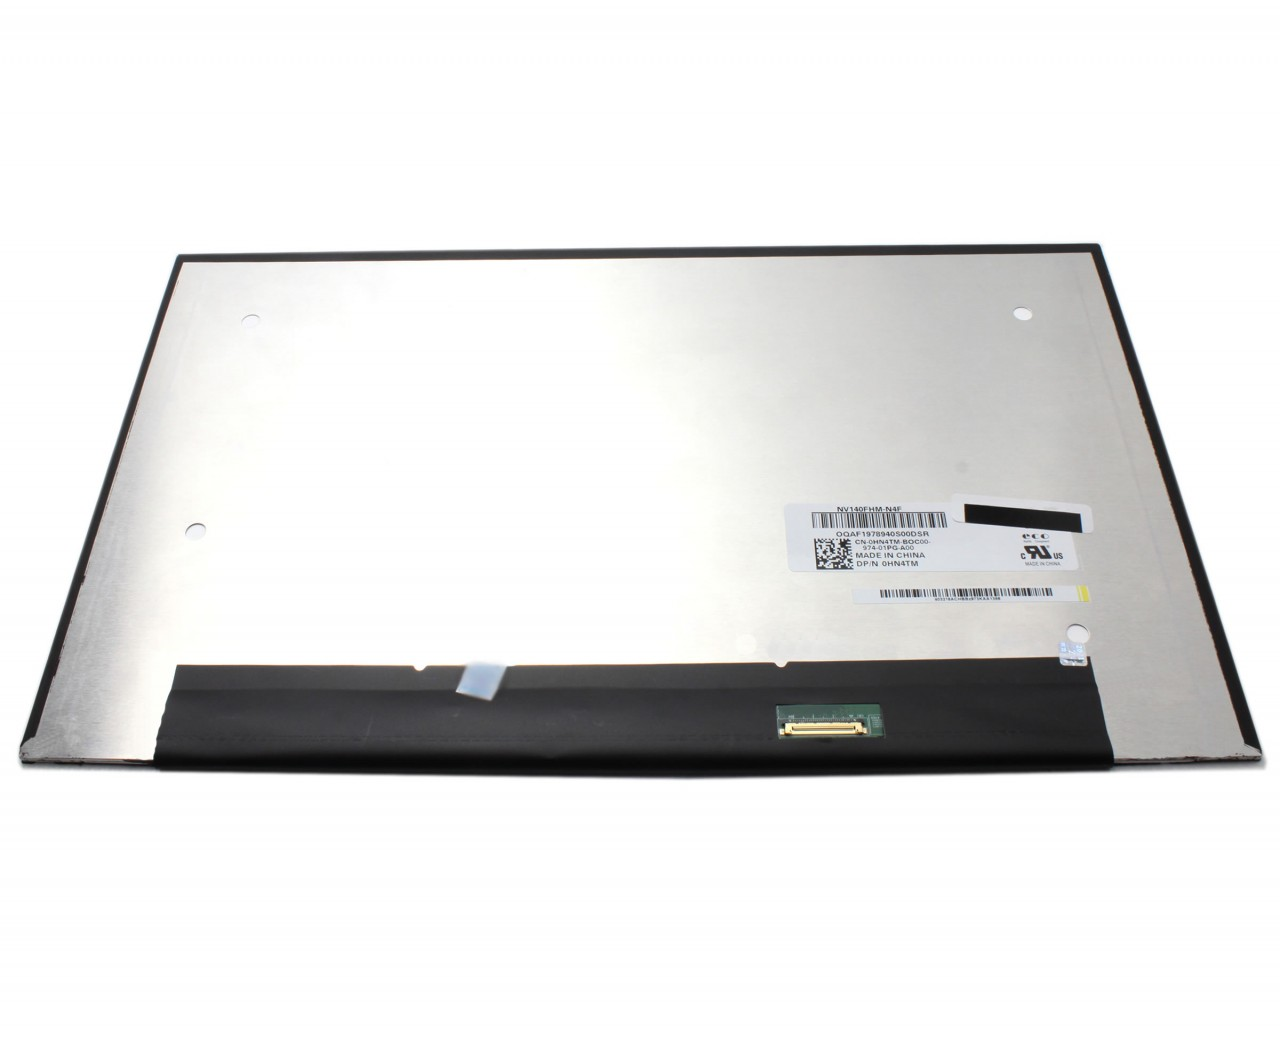 Display laptop Dell Latitude 5410 Ecran 14.0 1920x1080 30 pinni eDP imagine powerlaptop.ro 2021